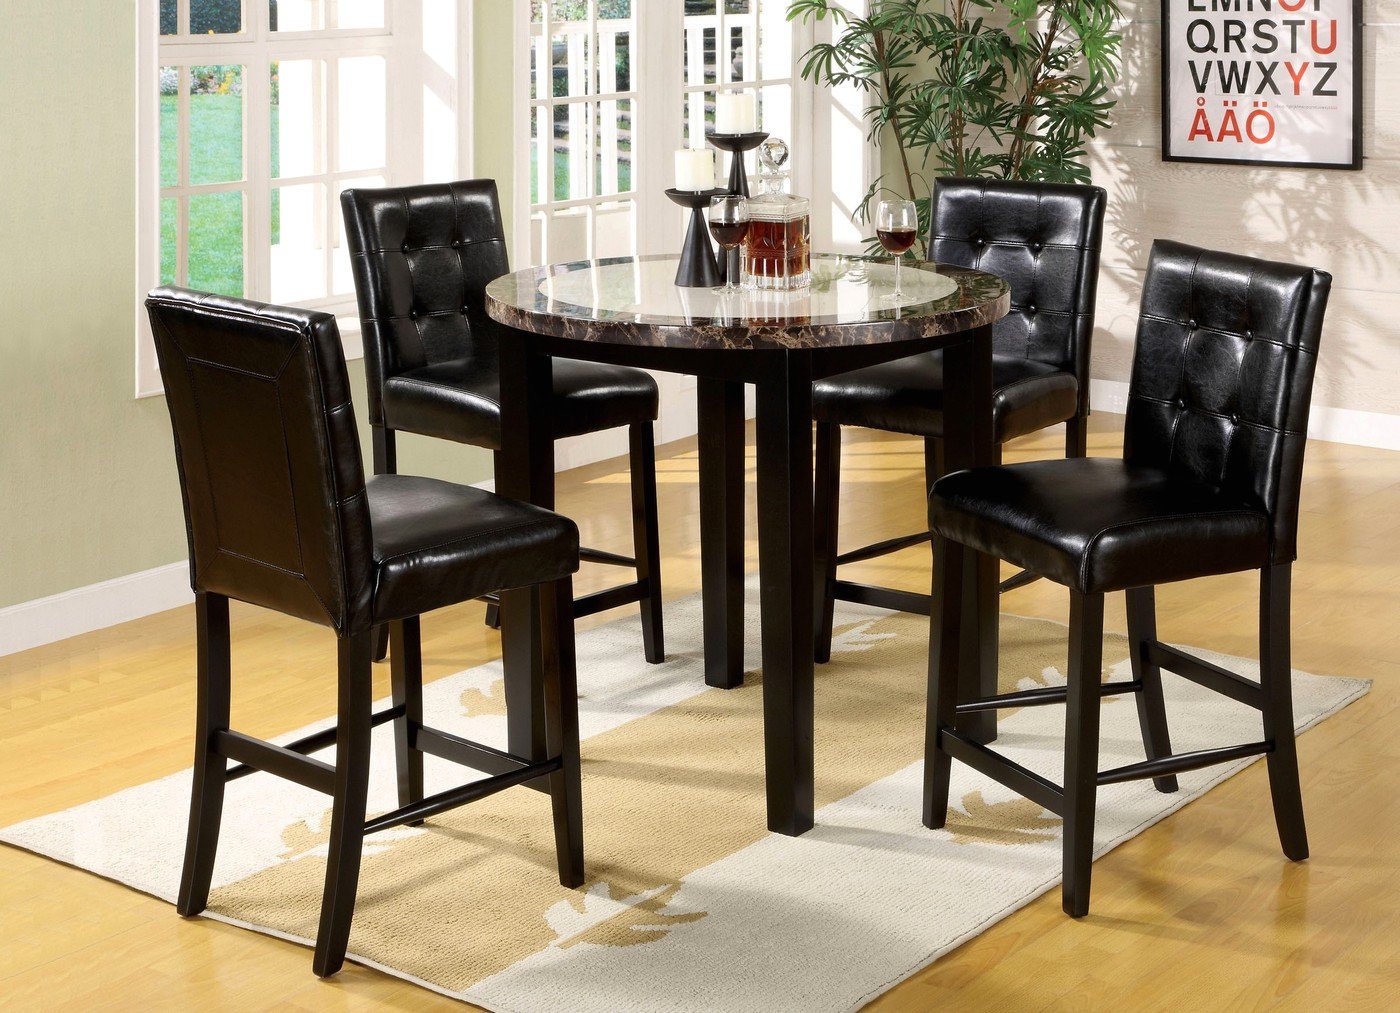 counter height dining chair children rocking chairs atlas iv contemporary black set with